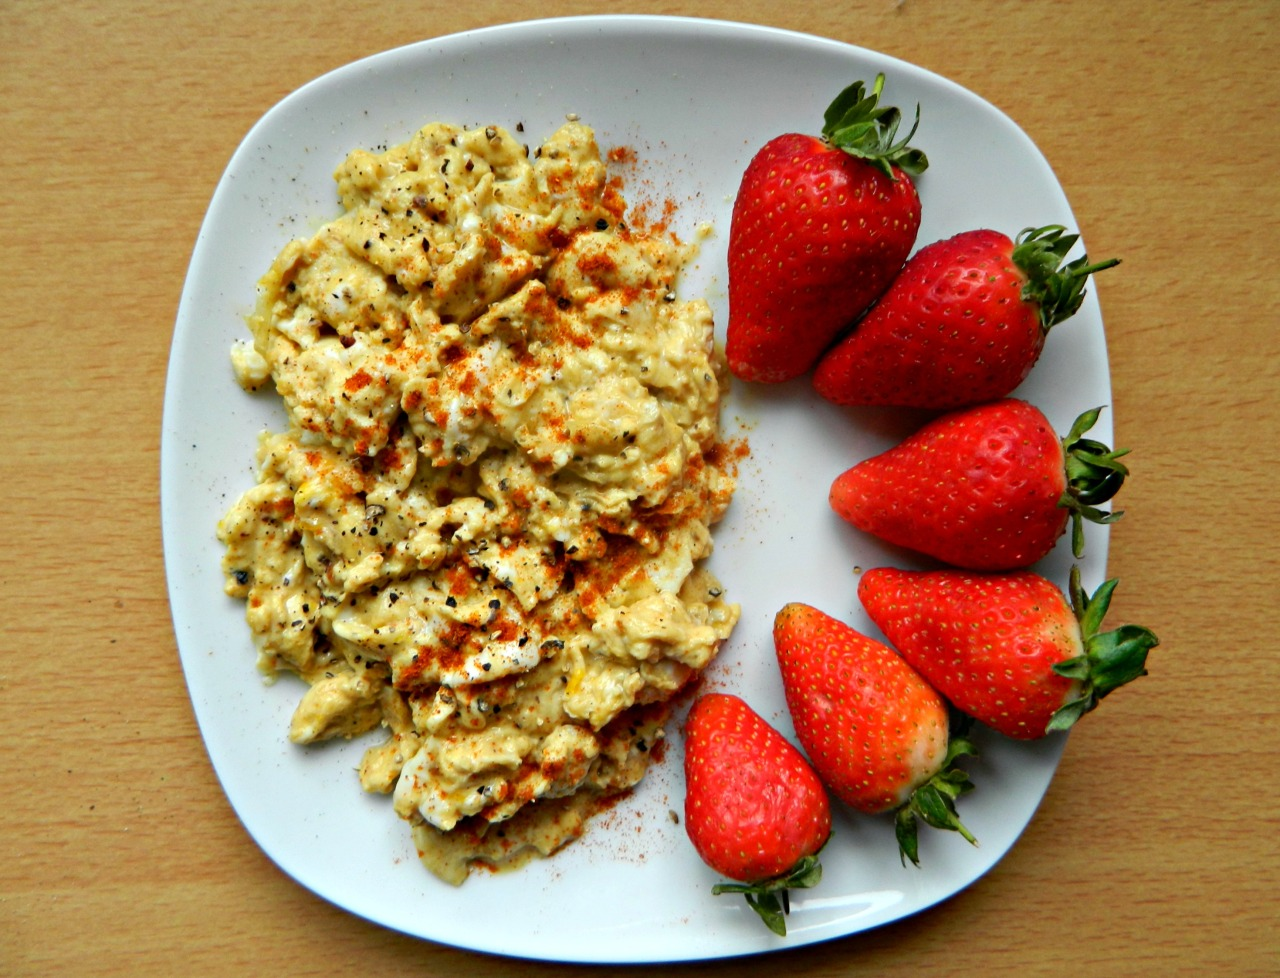 Breakfast - scrambled eggs with paprika and some strawberries. I'm so glad strawberries are back in season! Gone are the days it's £4 a punnet, hurrah!